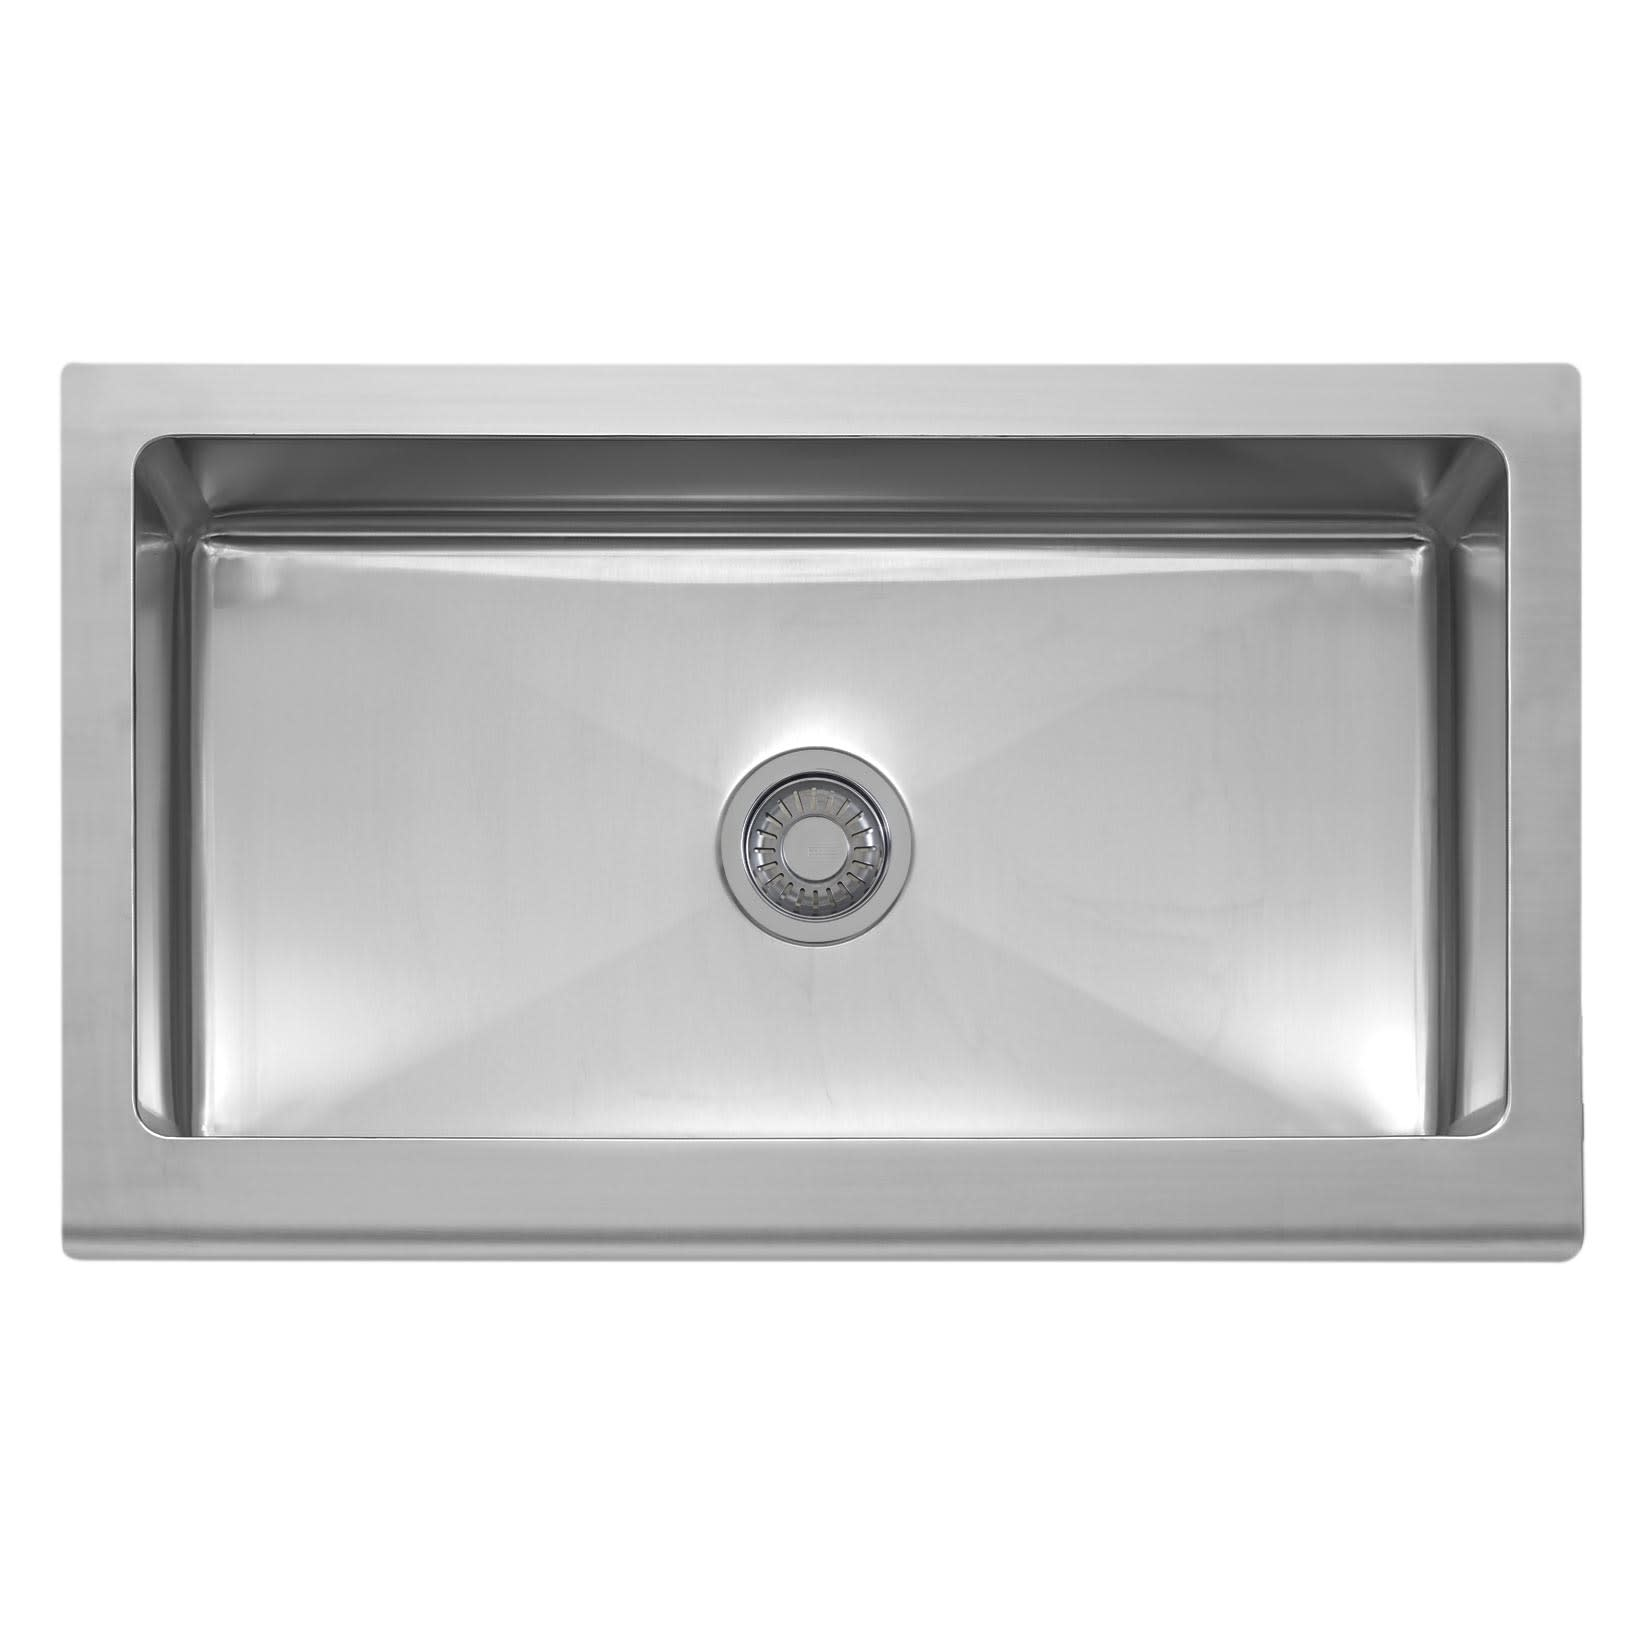 Franke Mhx710 36 Manor House 36 Single Bowl Kitchen Sink With Apron Front Qualitybath Com